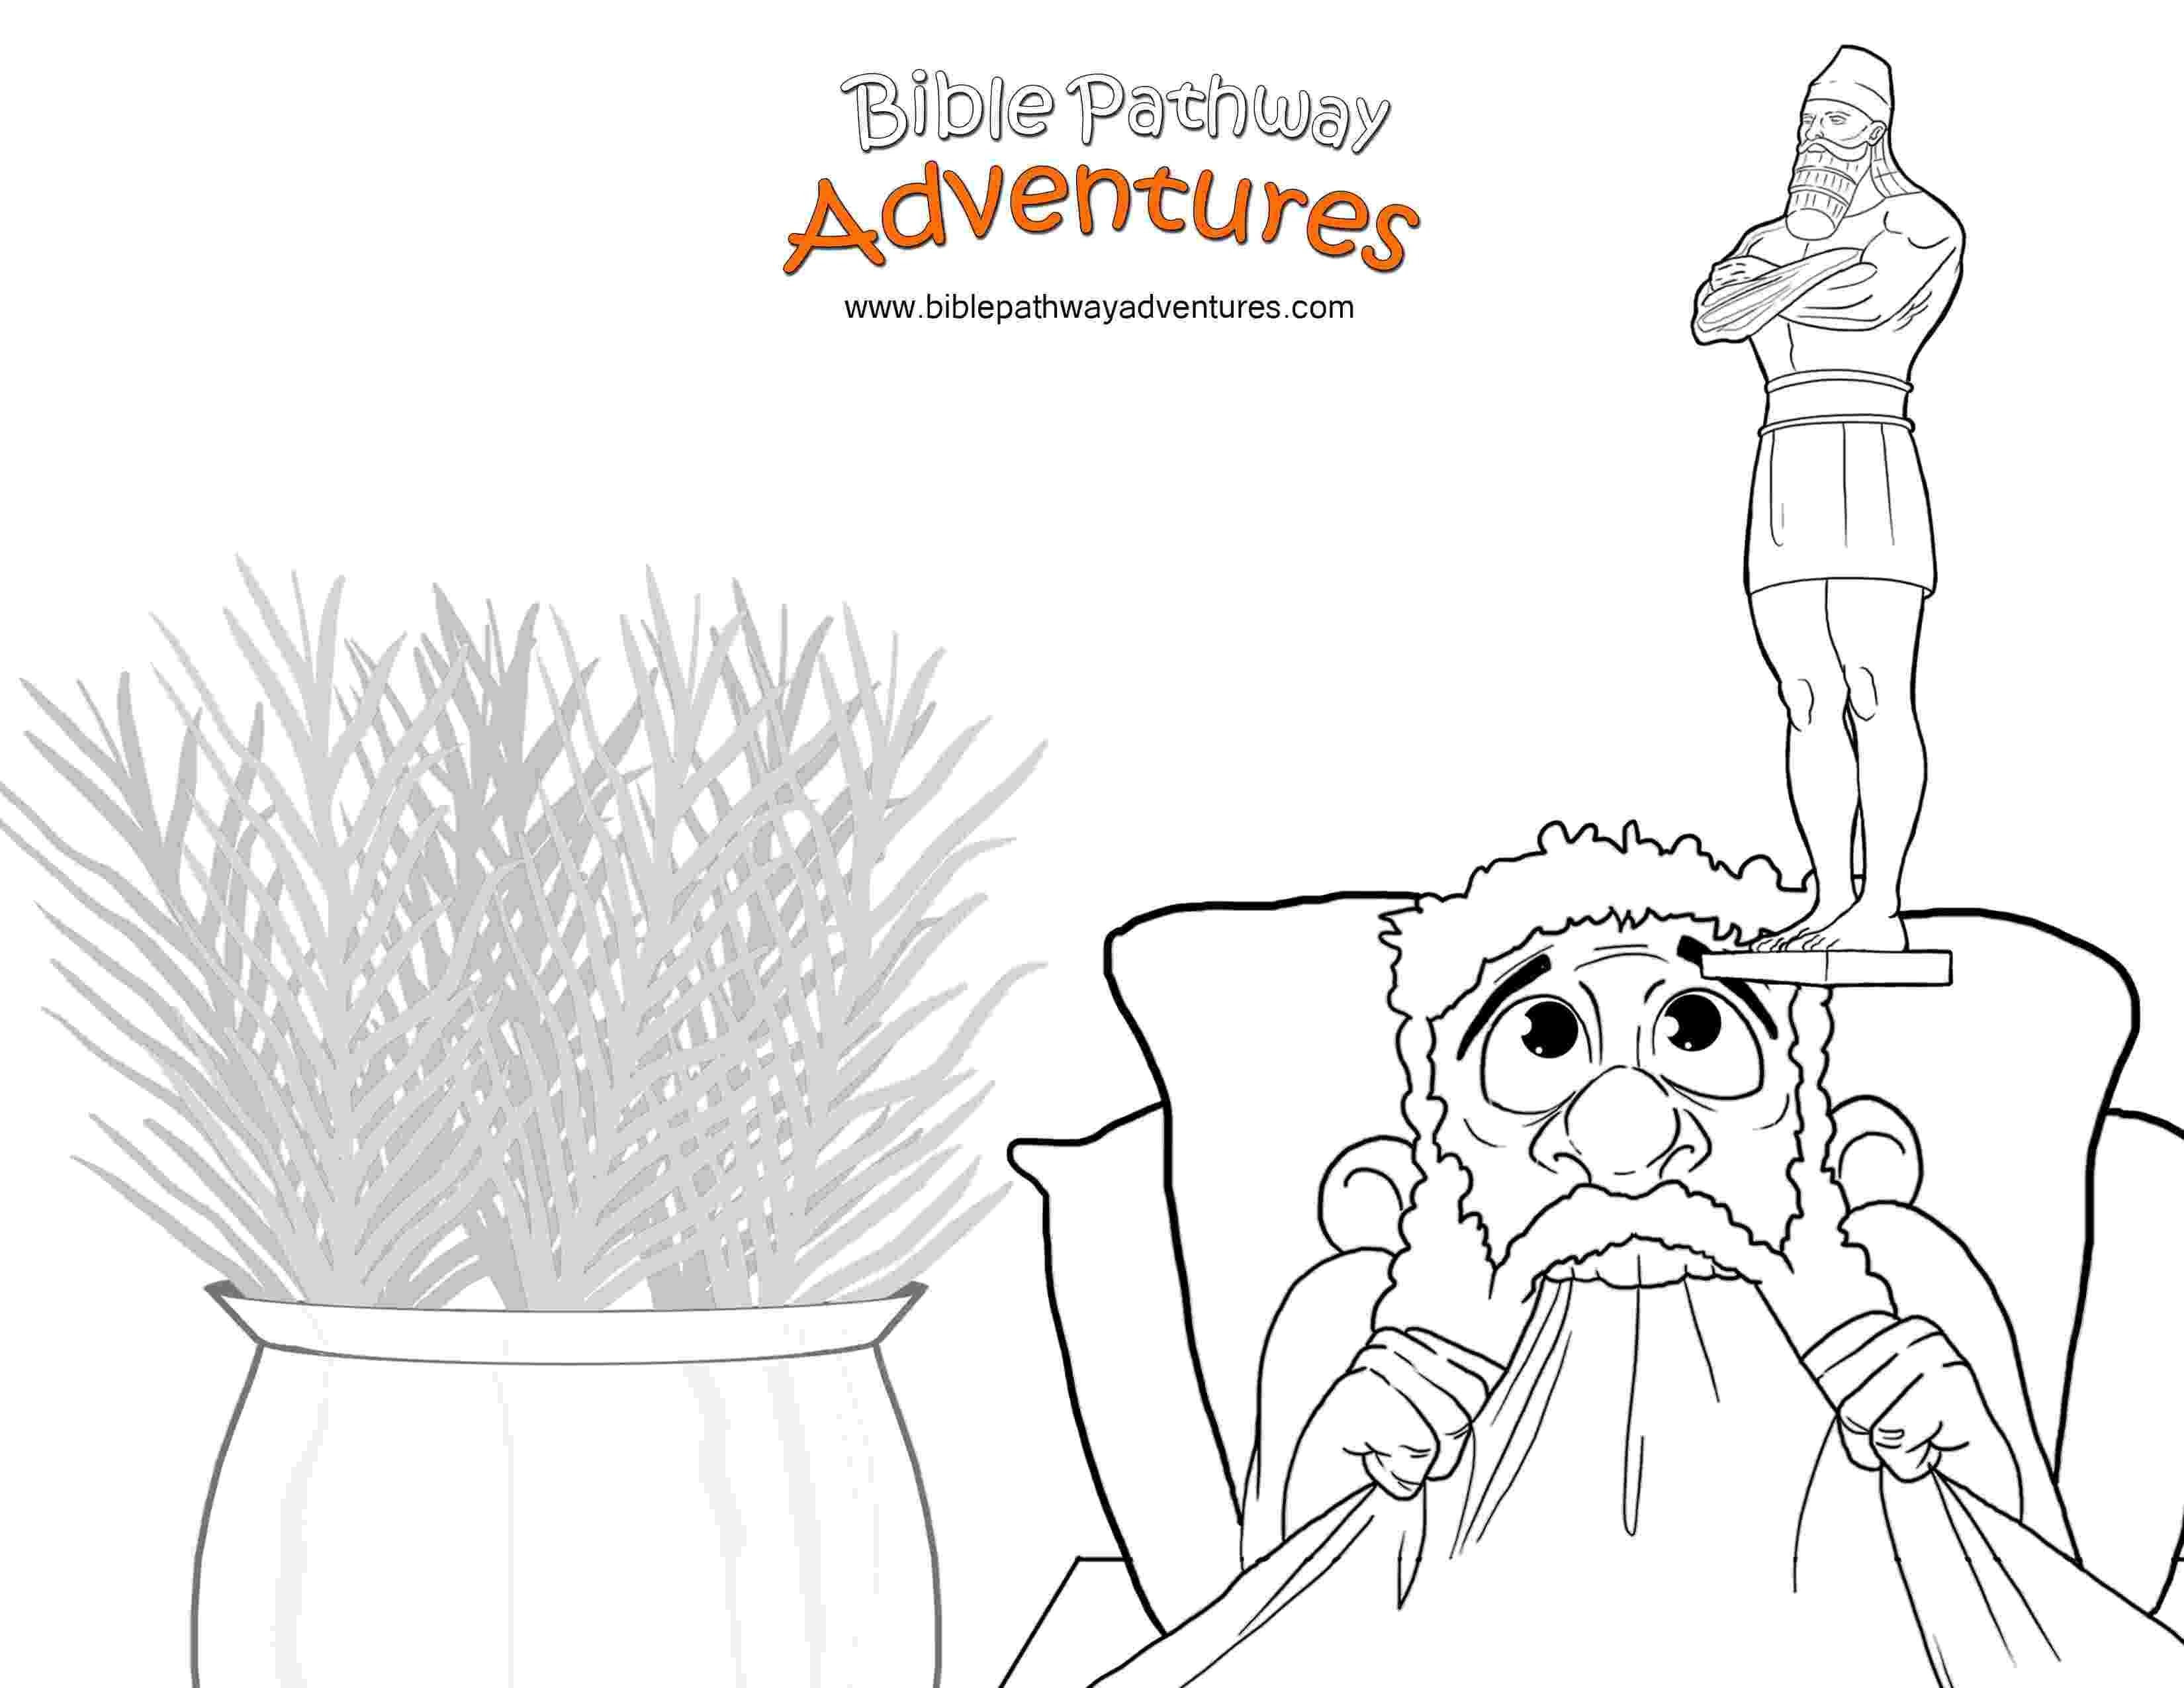 nebuchadnezzar coloring page nebuchadnezzars statue bible pathway adventures page coloring nebuchadnezzar